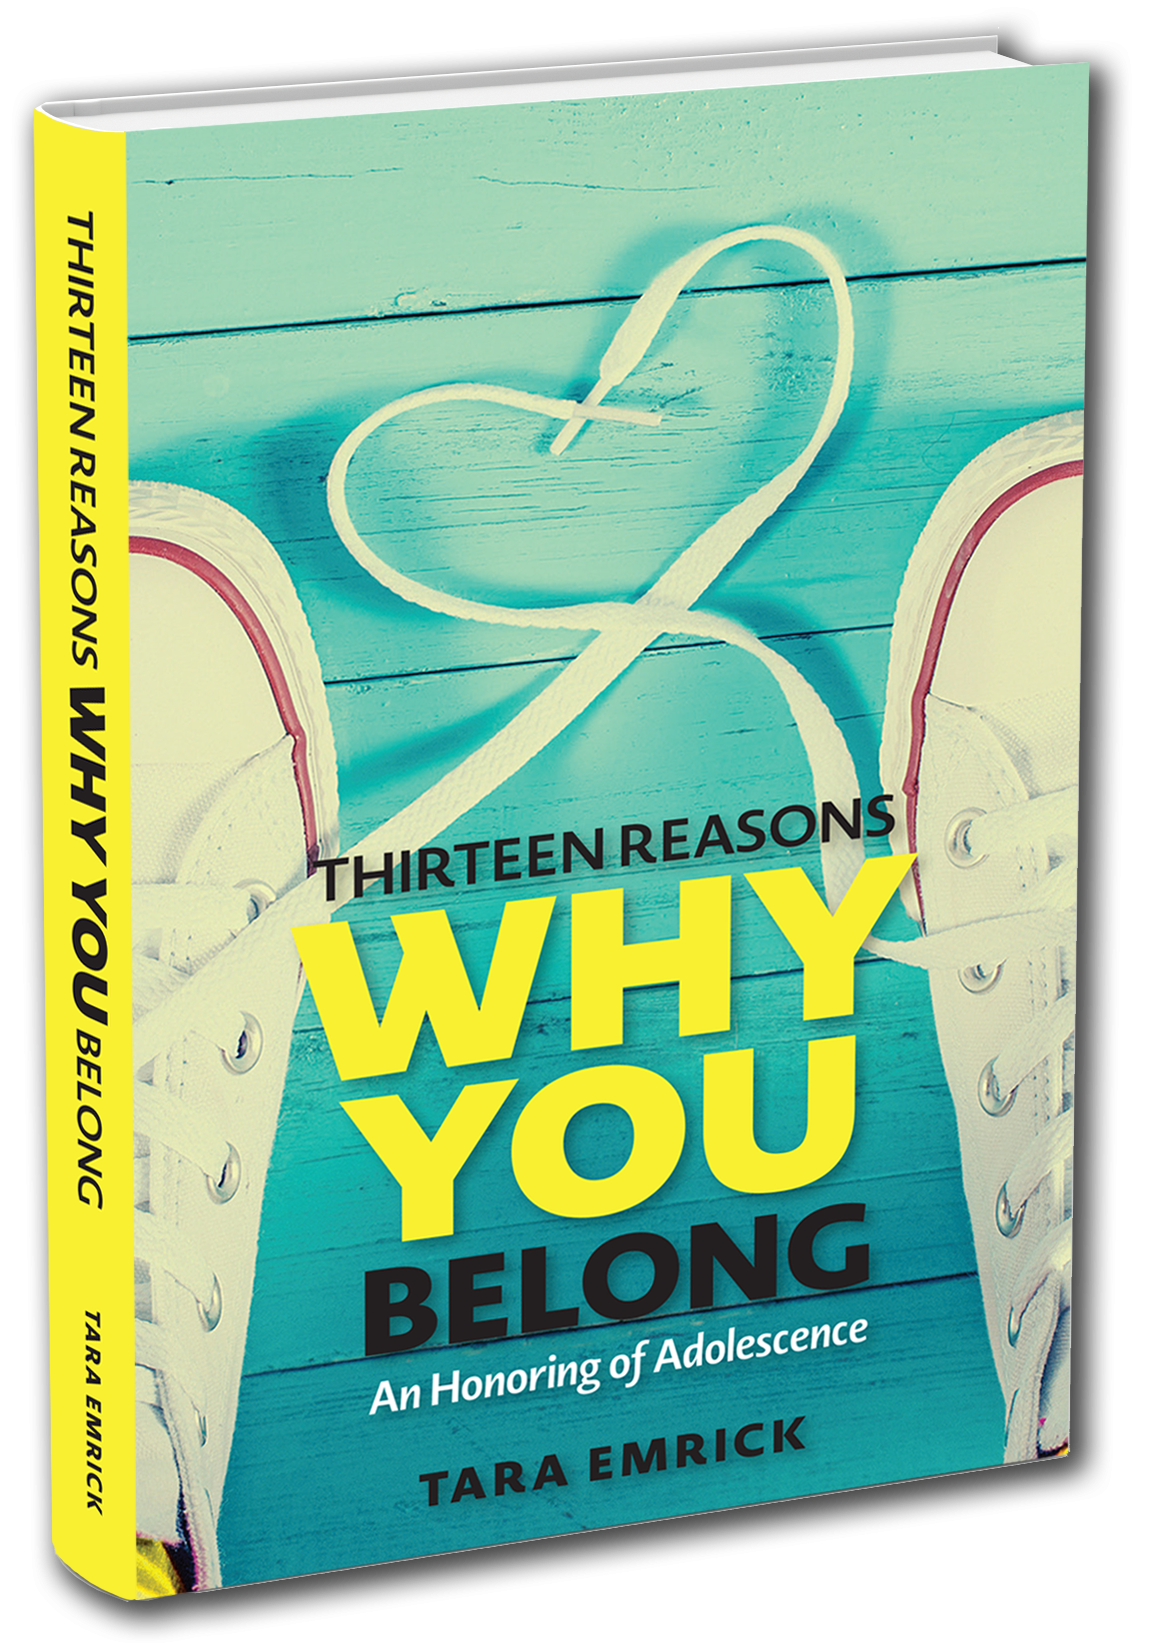 New book for teens and their parents/family - Feeling that you belong can be difficult at any time in life, but even more so during your teenage years. Yet, your teenage years can be an exciting time of discovery—when you begin to connect with who you are. It can be a powerful time when you begin to see why you are here.In Thirteen Reasons Why You Belong, you have the opportunity to see that YOU and your life matter. Thirteen Reasons offers tools for you to be yourself, to trust in yourself, and to know that you belong—right here, right now.Buy it NOW (click here) Amazon or Tattered Cover